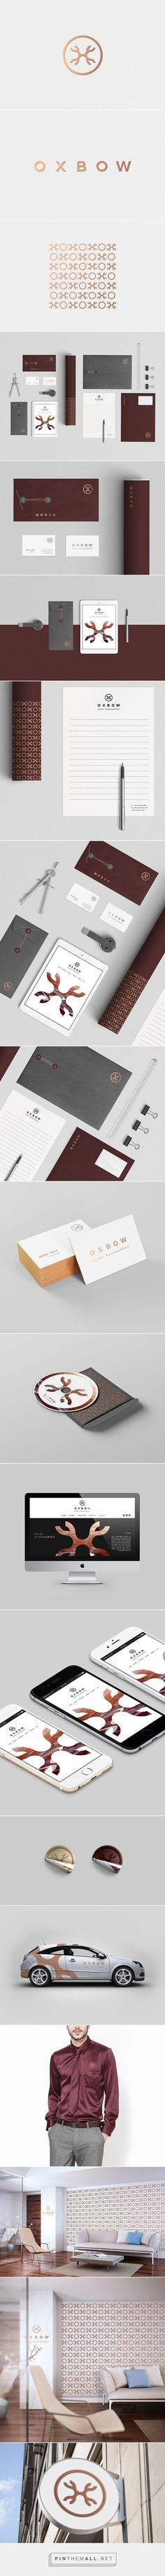 Oxbow Asset Management Branding on Behance